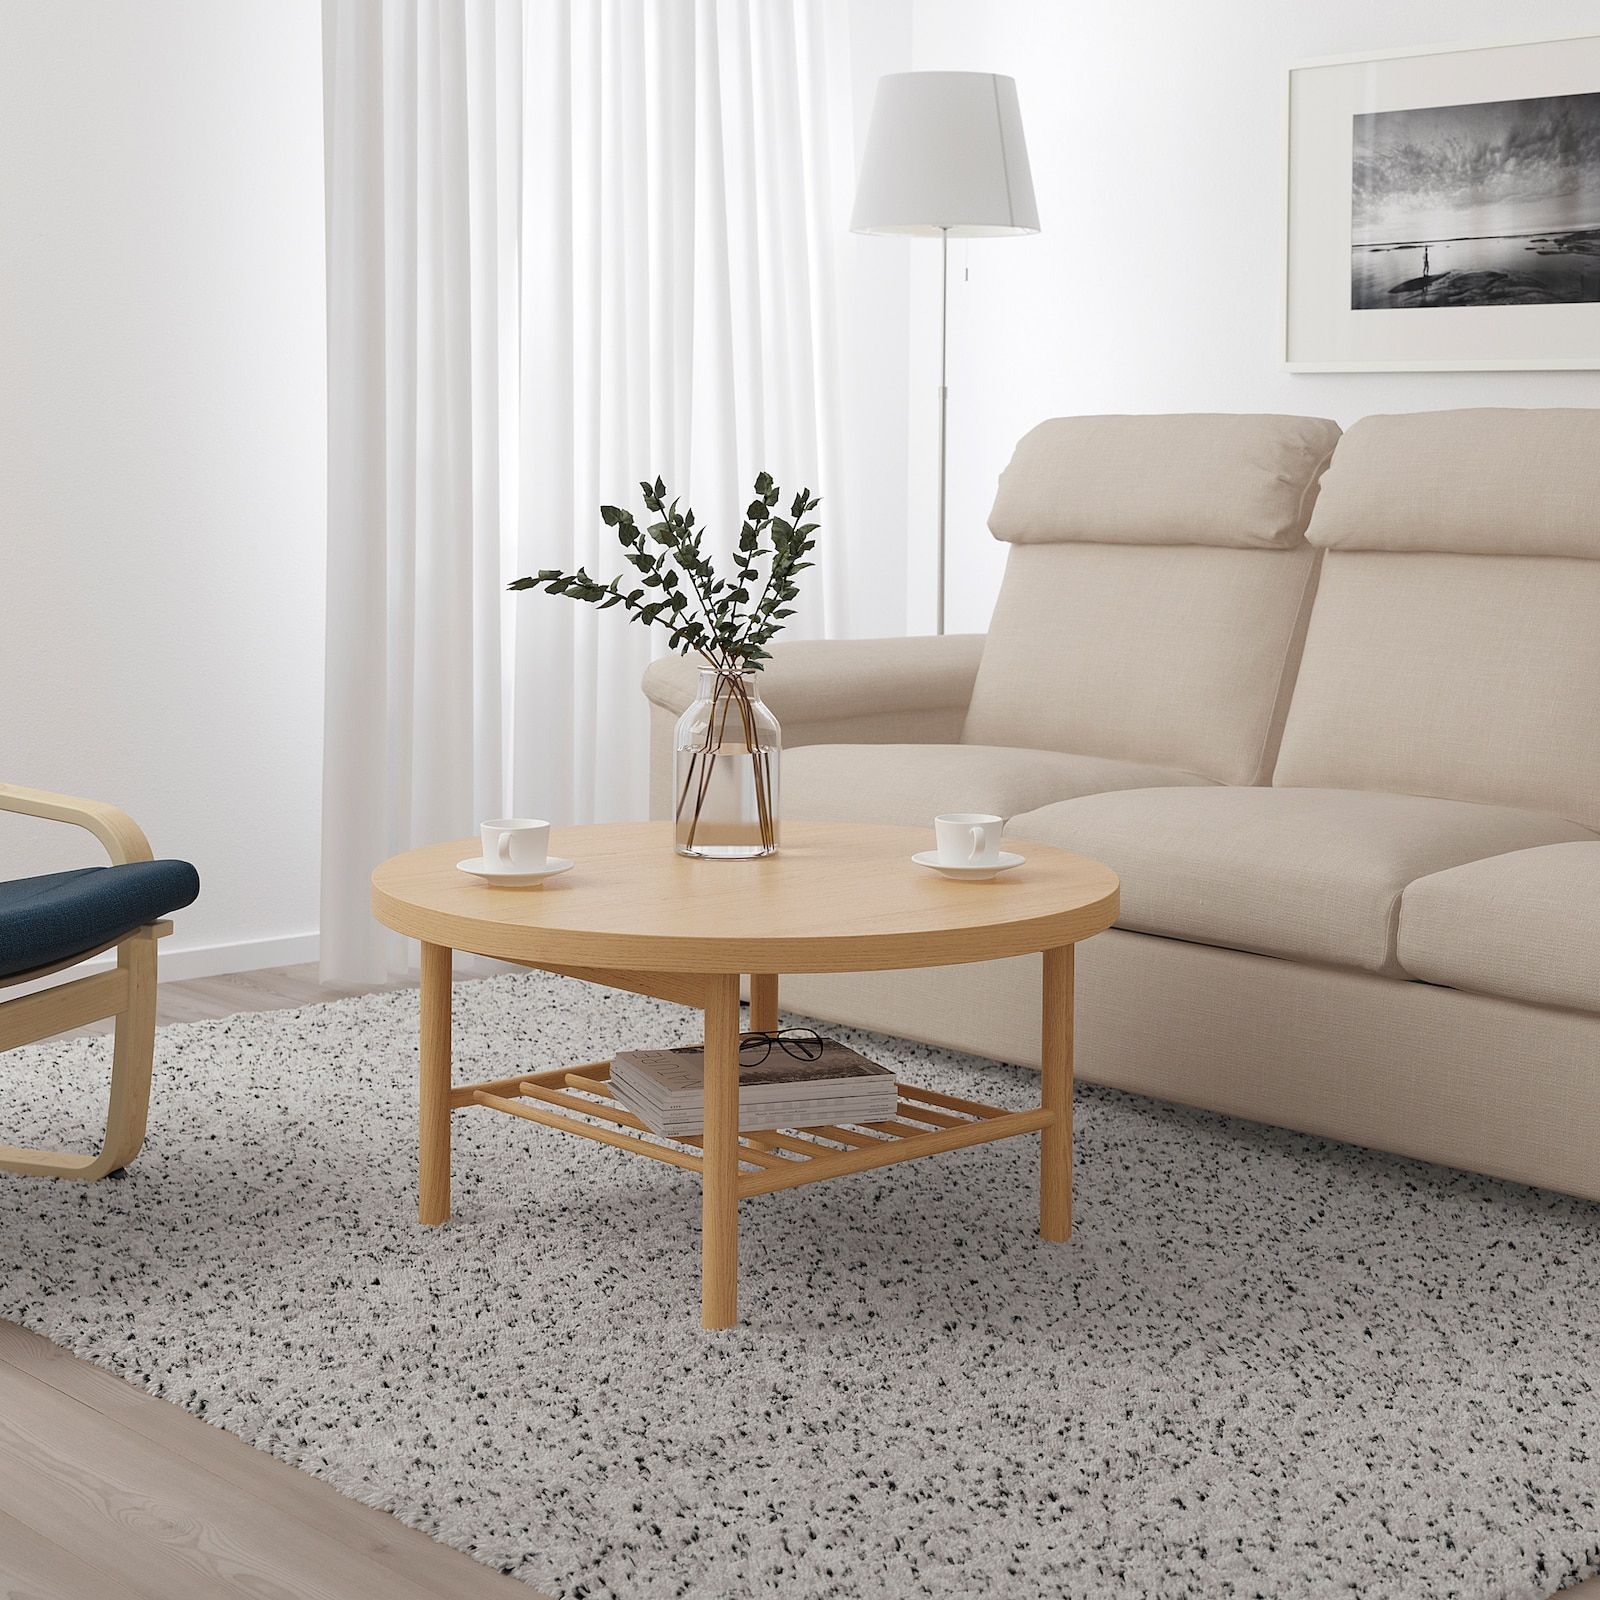 Listerby Coffee Table White Stained Oak 35 3 8 Ikea Coffee Table Coffee Table White Ikea Coffee Table [ 1600 x 1600 Pixel ]